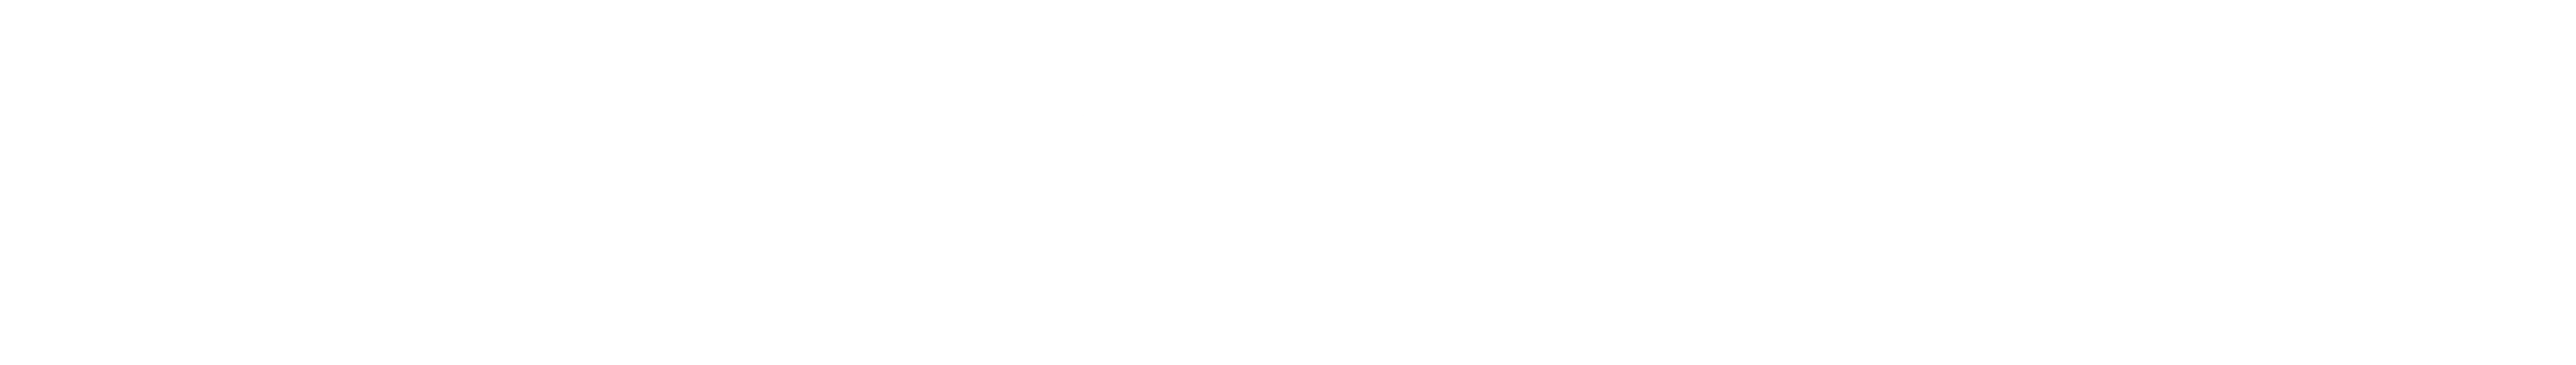 Music Therapy St. Pete, LLC